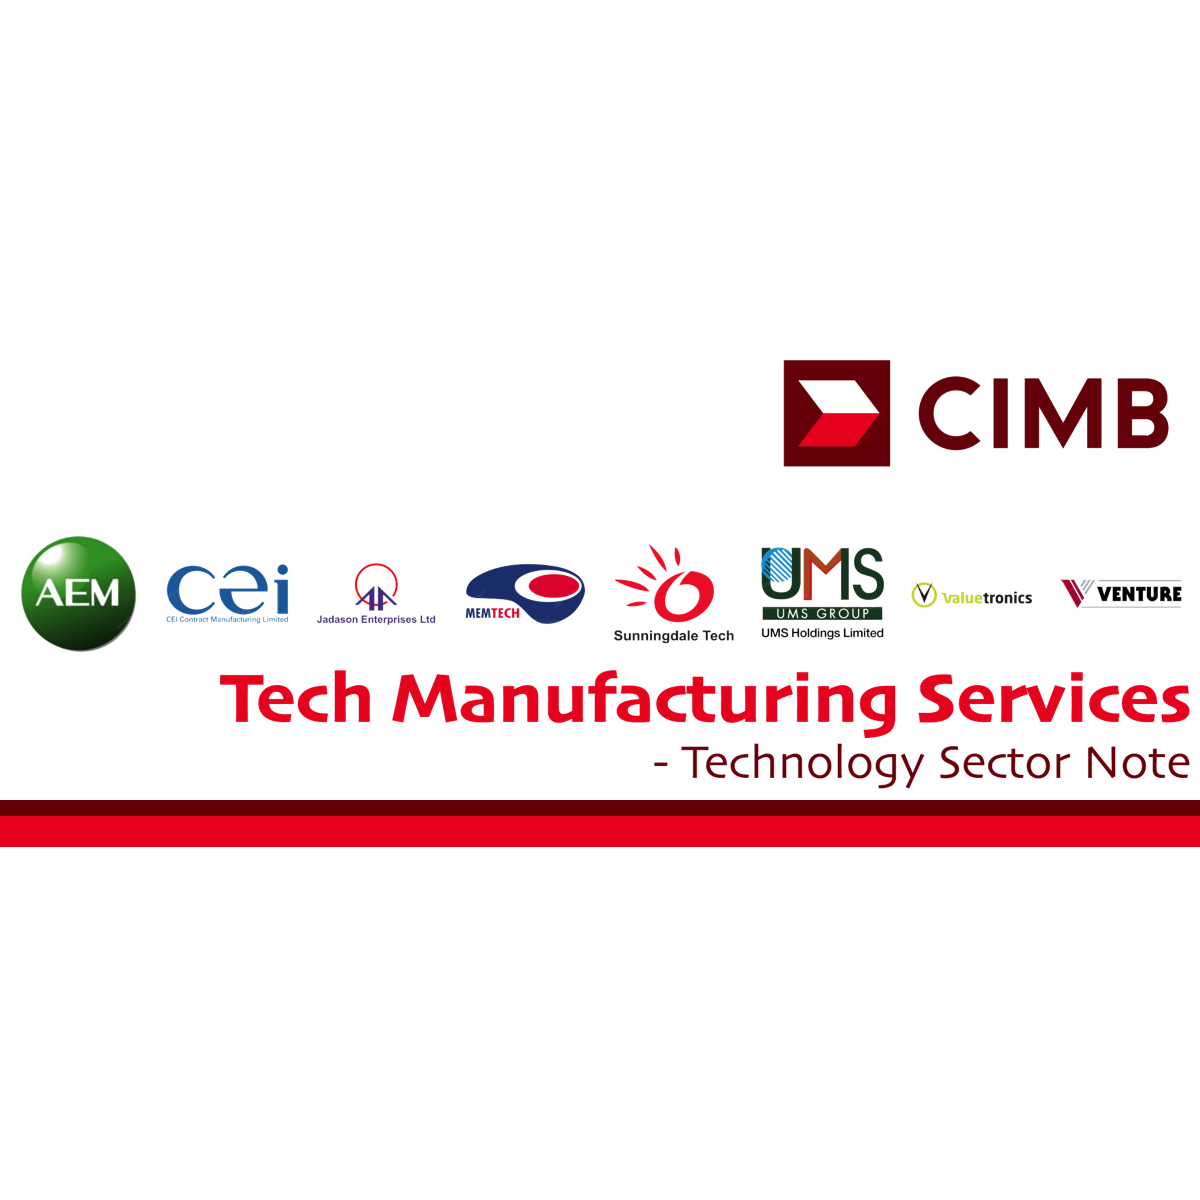 Tech Manufacturing Services - CIMB Research 2018-01-09: Unearthing The Laggards